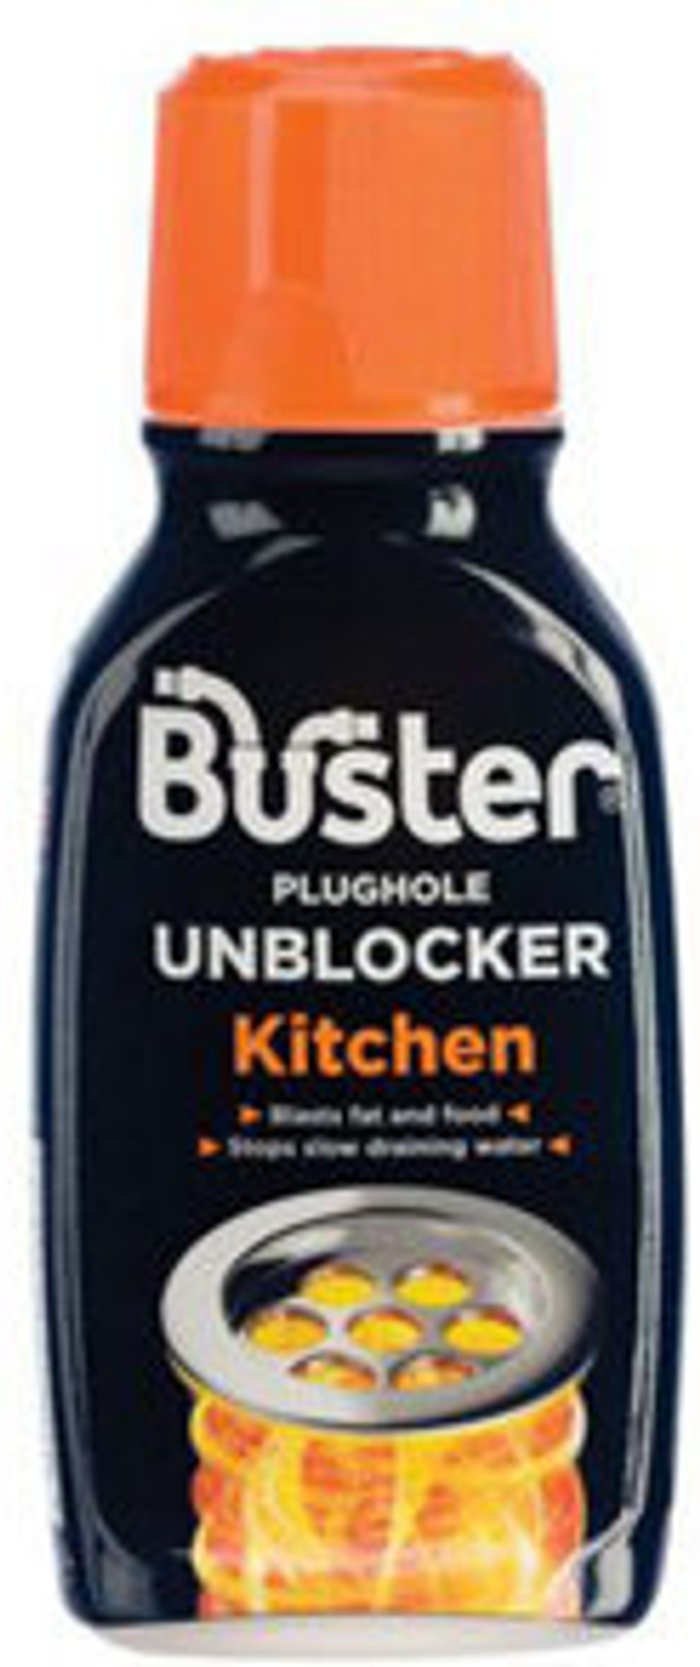 Buster Buster Plughole unblocker